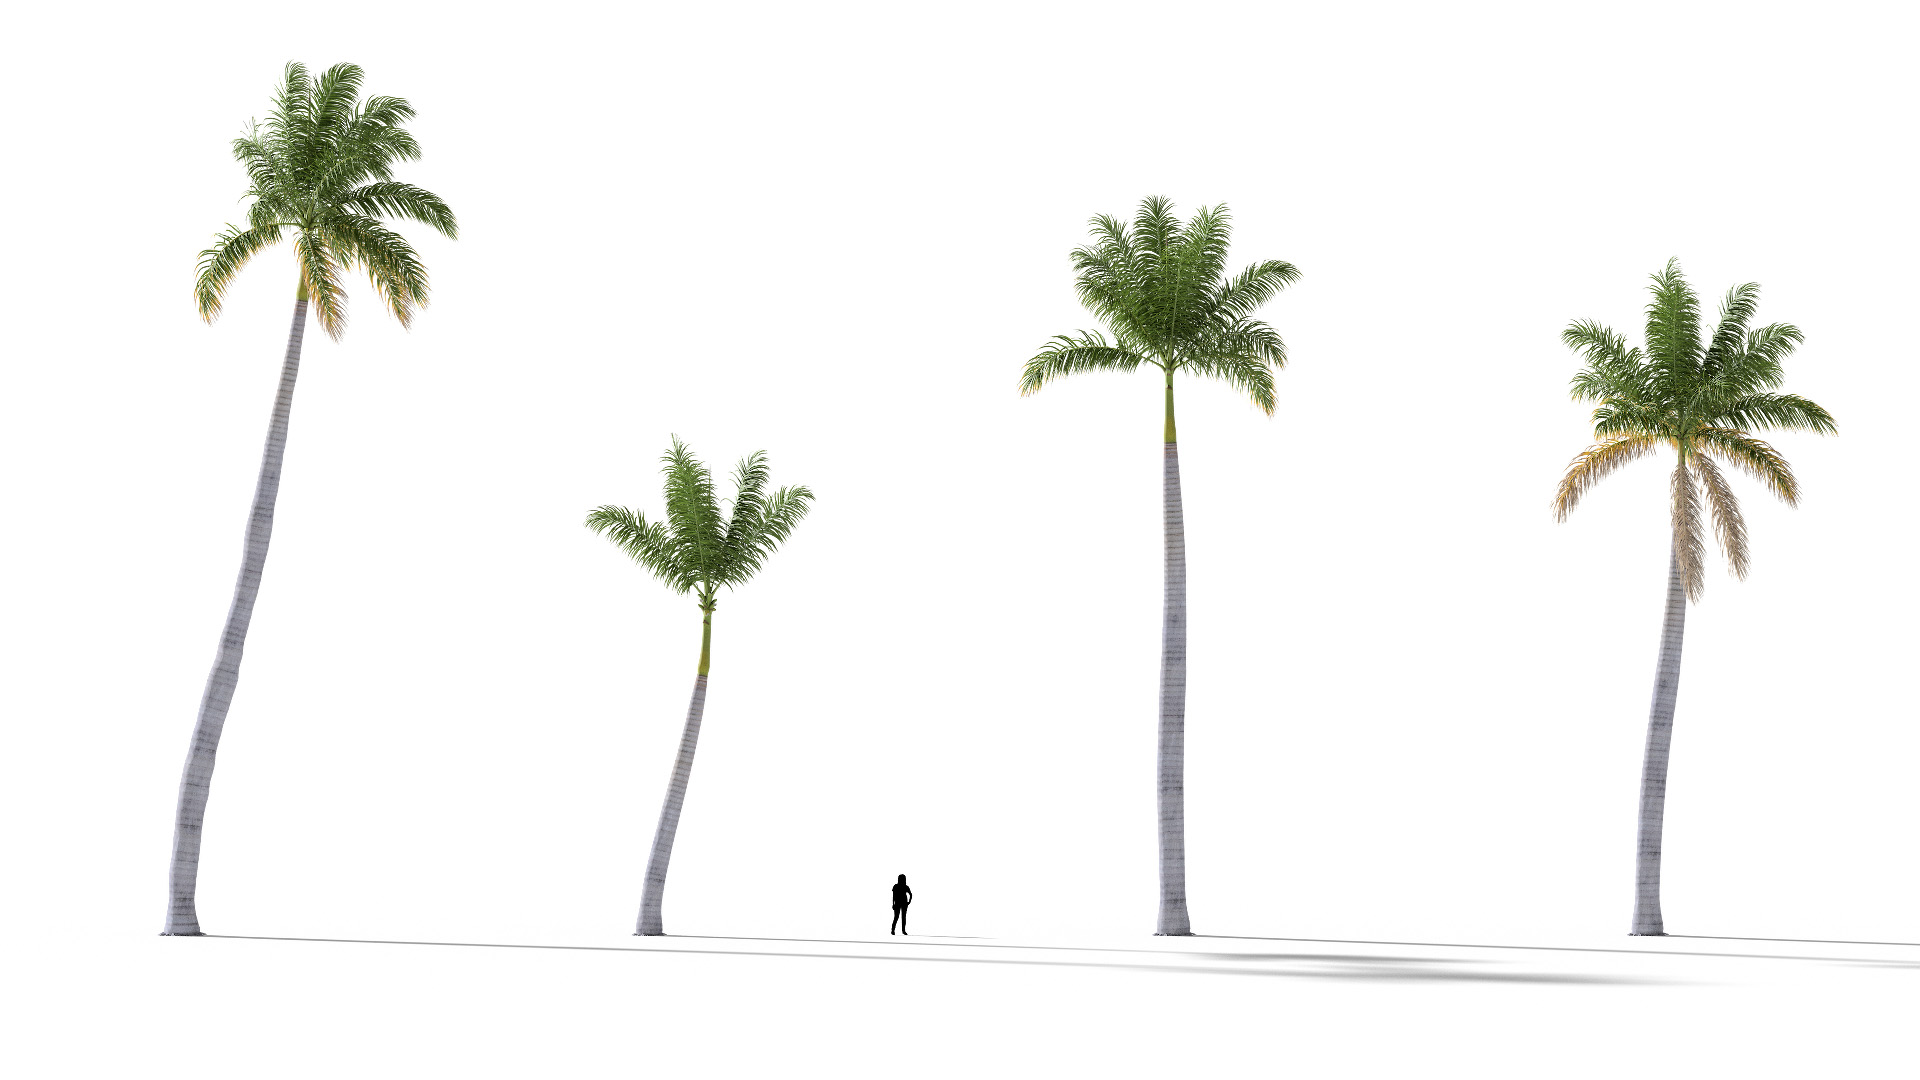 3D model of the Royal palm Roystonea regia published parameters